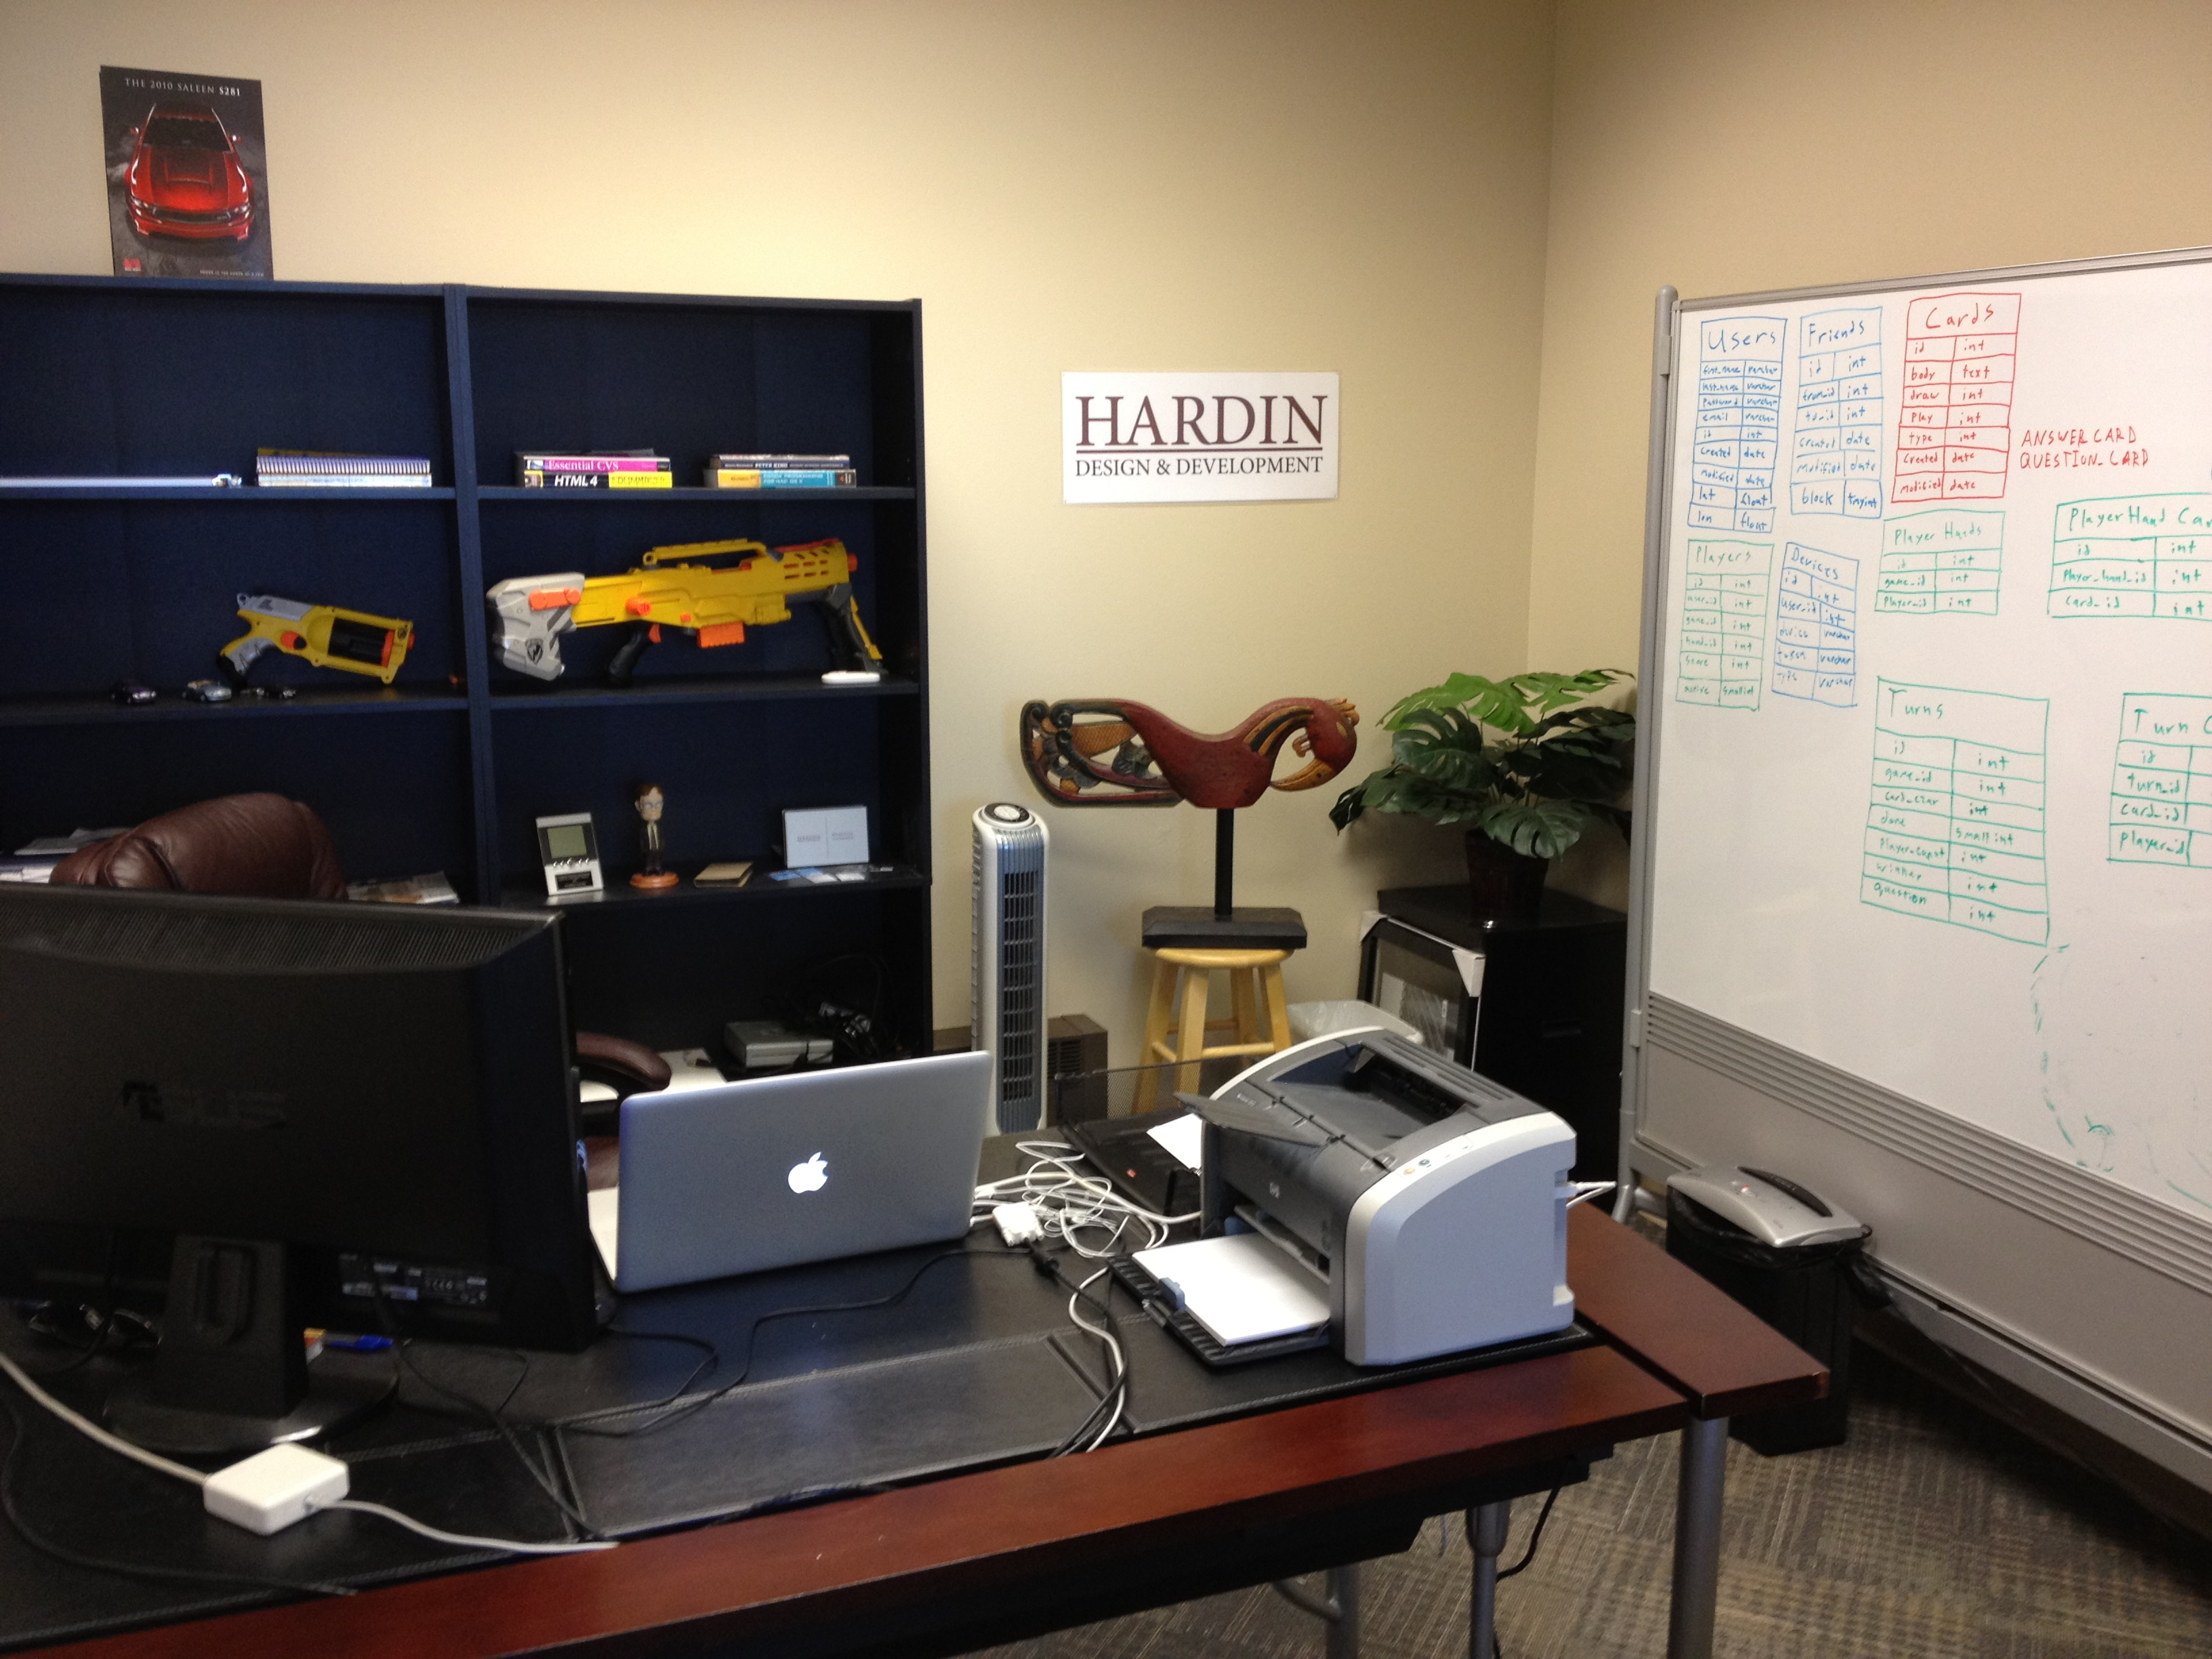 At Hardin DD Weu0027ve Been Rapidly Growing Over The Past Year, And We Moved  Into Our New, Bigger Offices In June. However, Between Working To Grow The  Company, ...